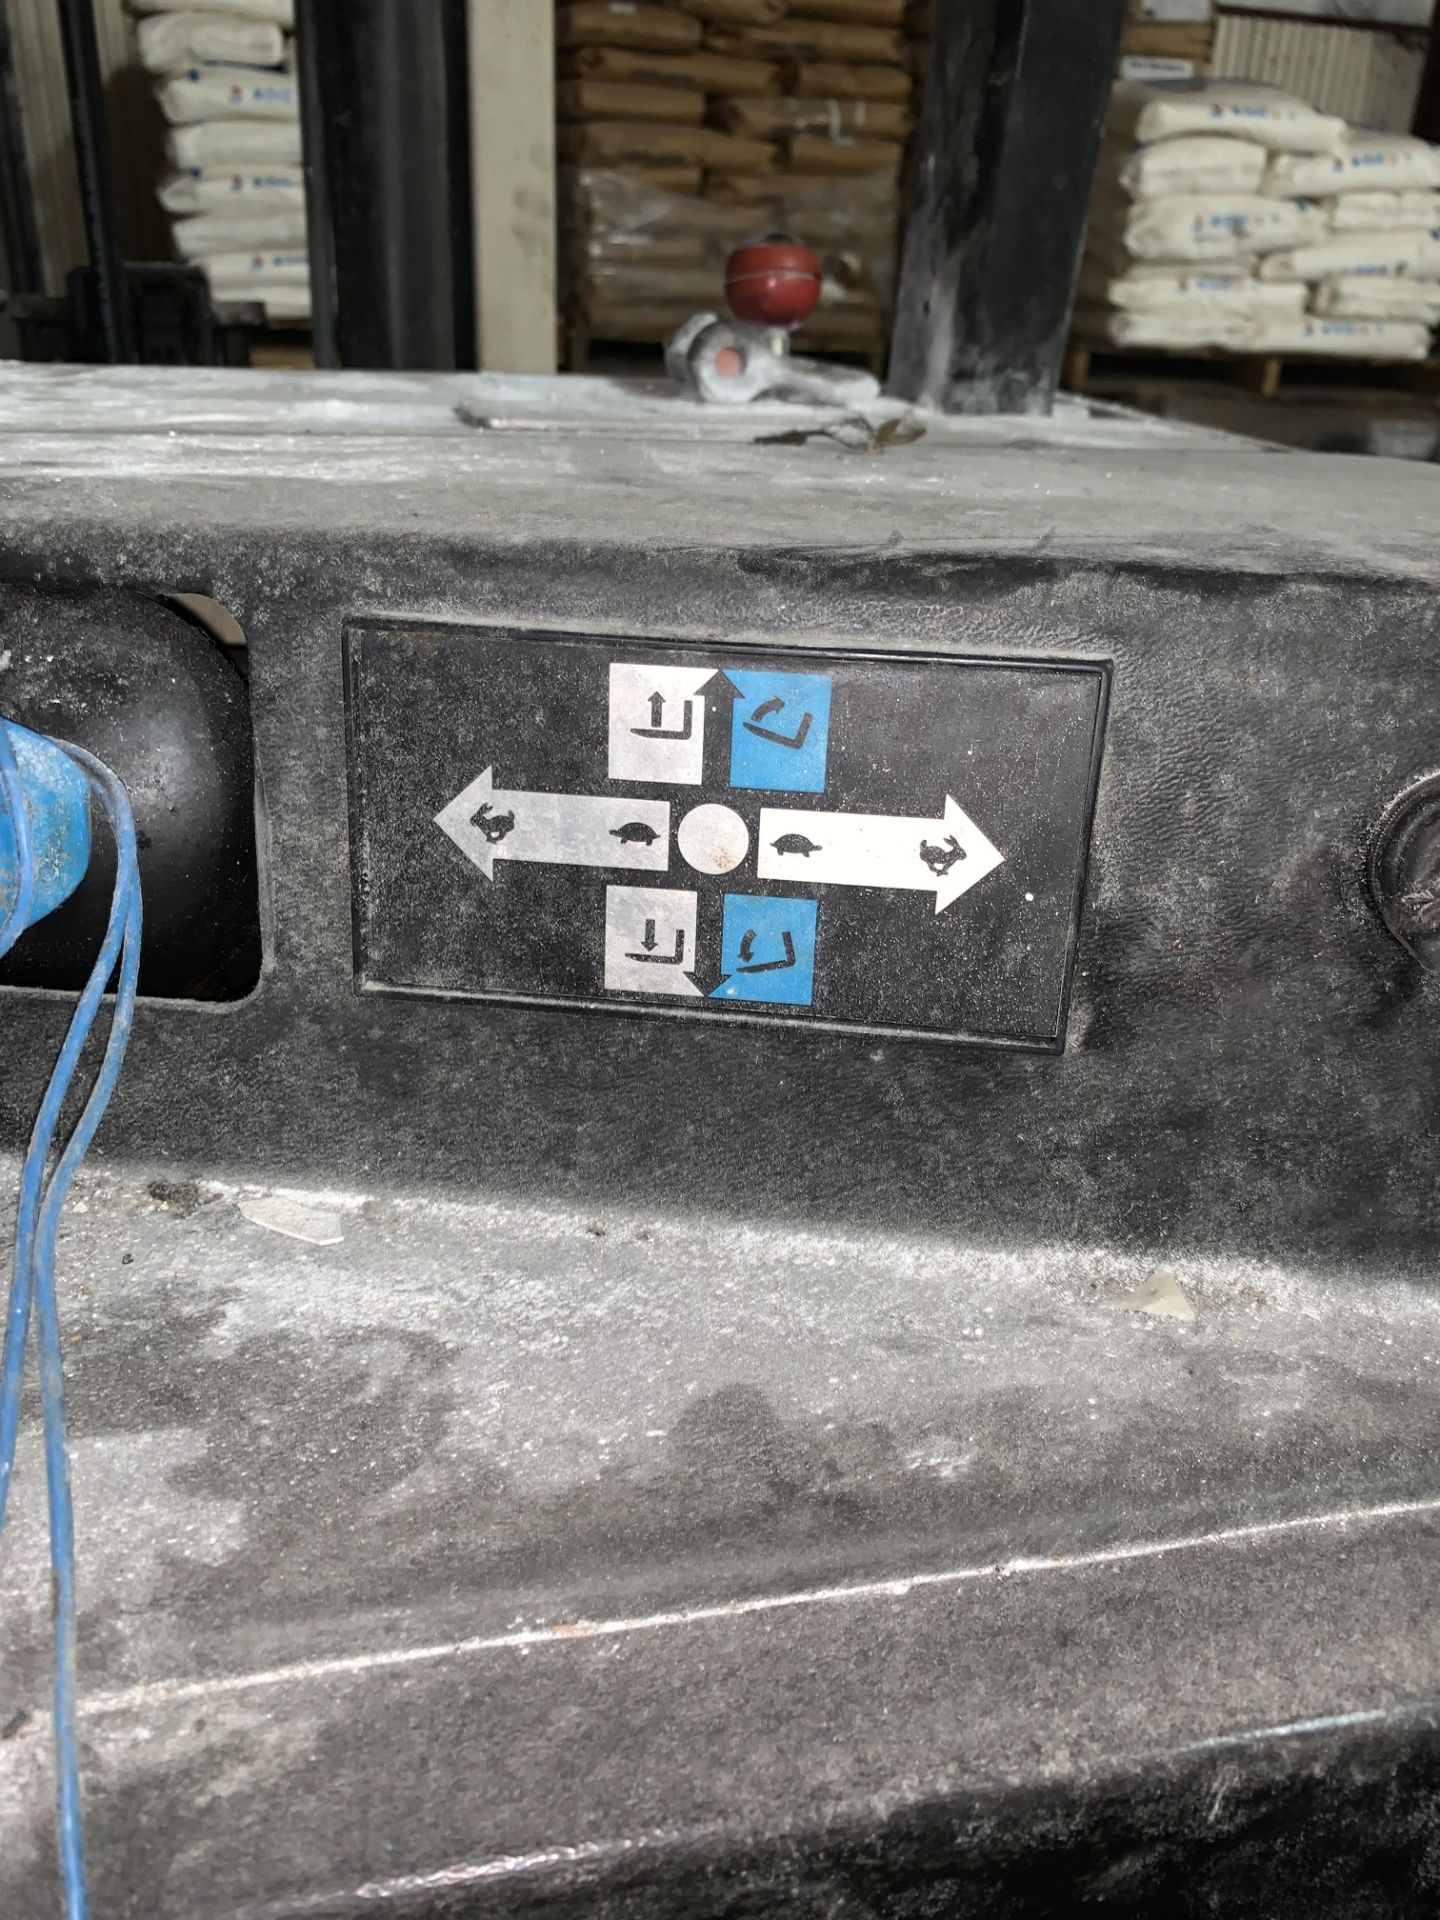 Lot 246 - Stand Up Forklift Truck Battery Operated -No Battery (Rigging and loading fees included in the